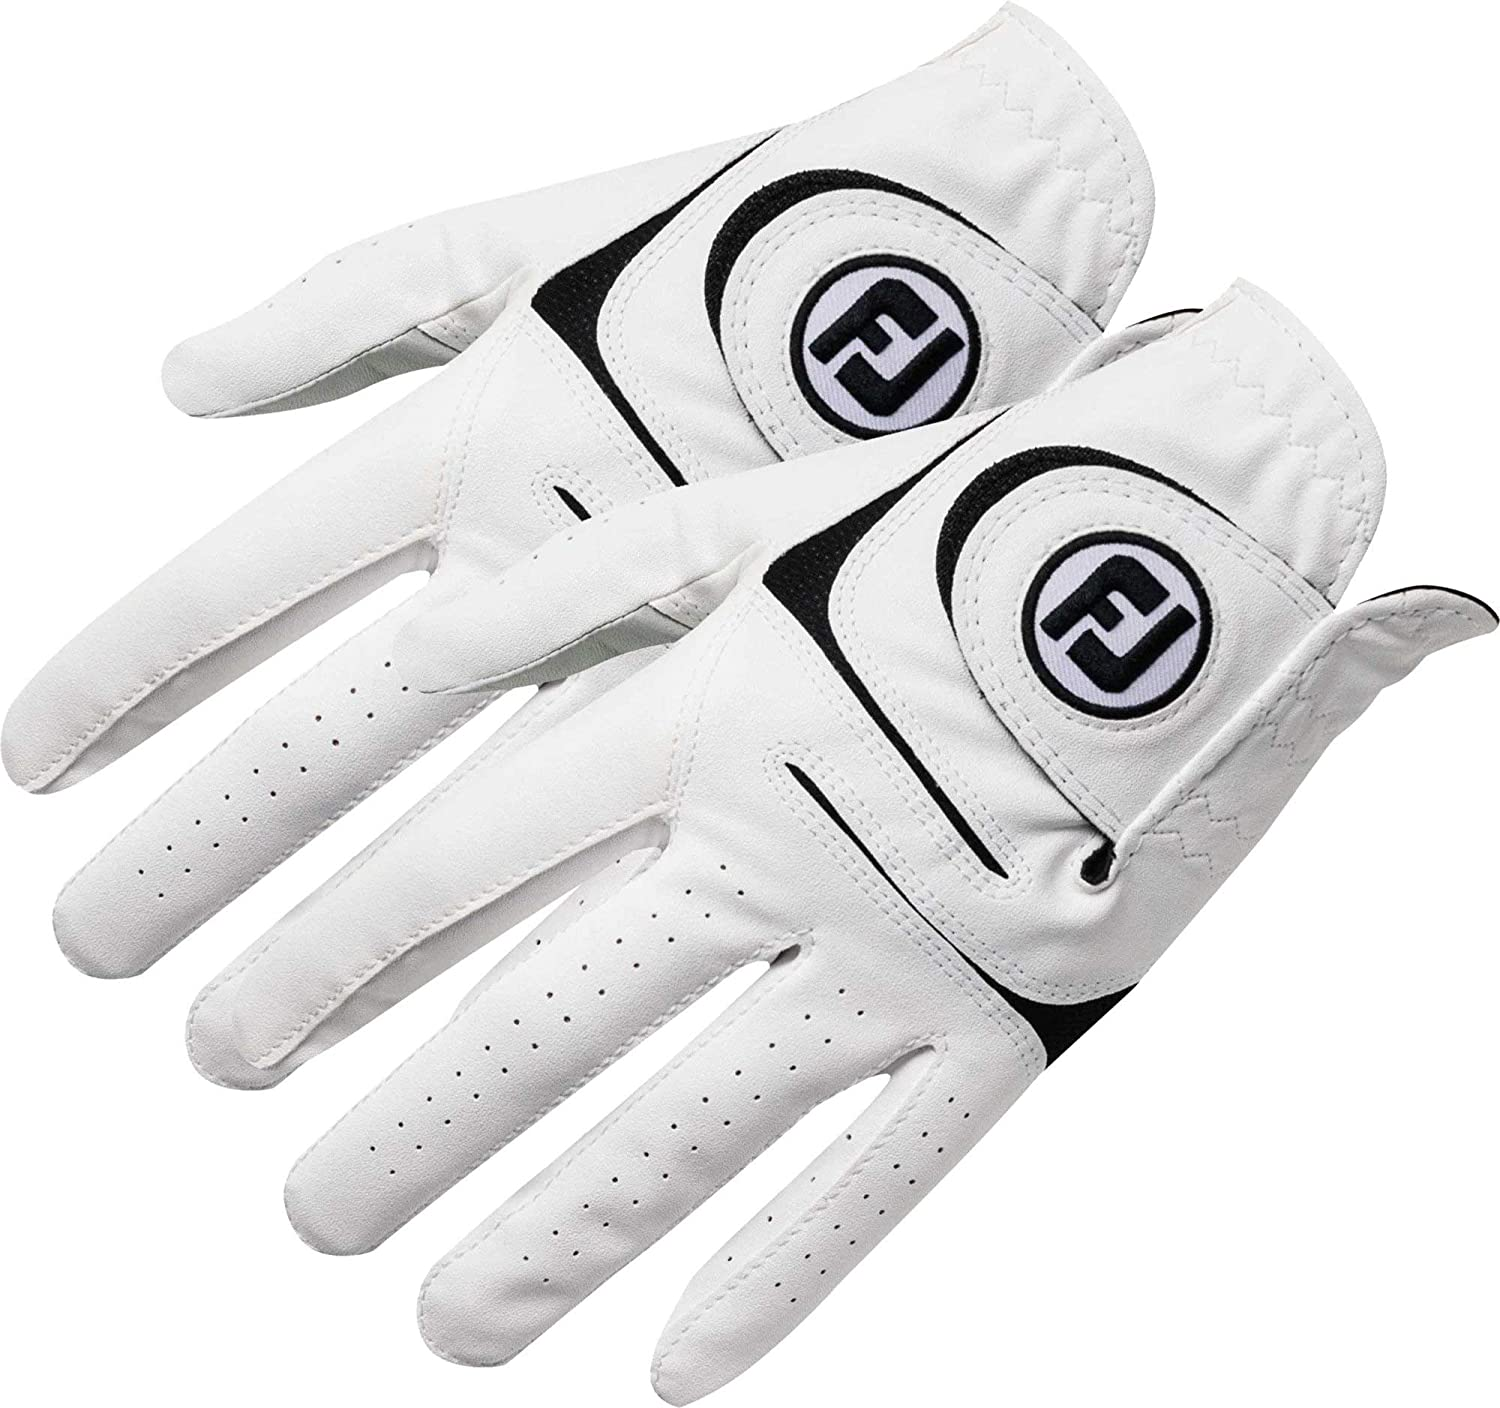 New Improved FootJoy WeatherSof Mens Golf Gloves 2 Pack – World 1 Golf Glove